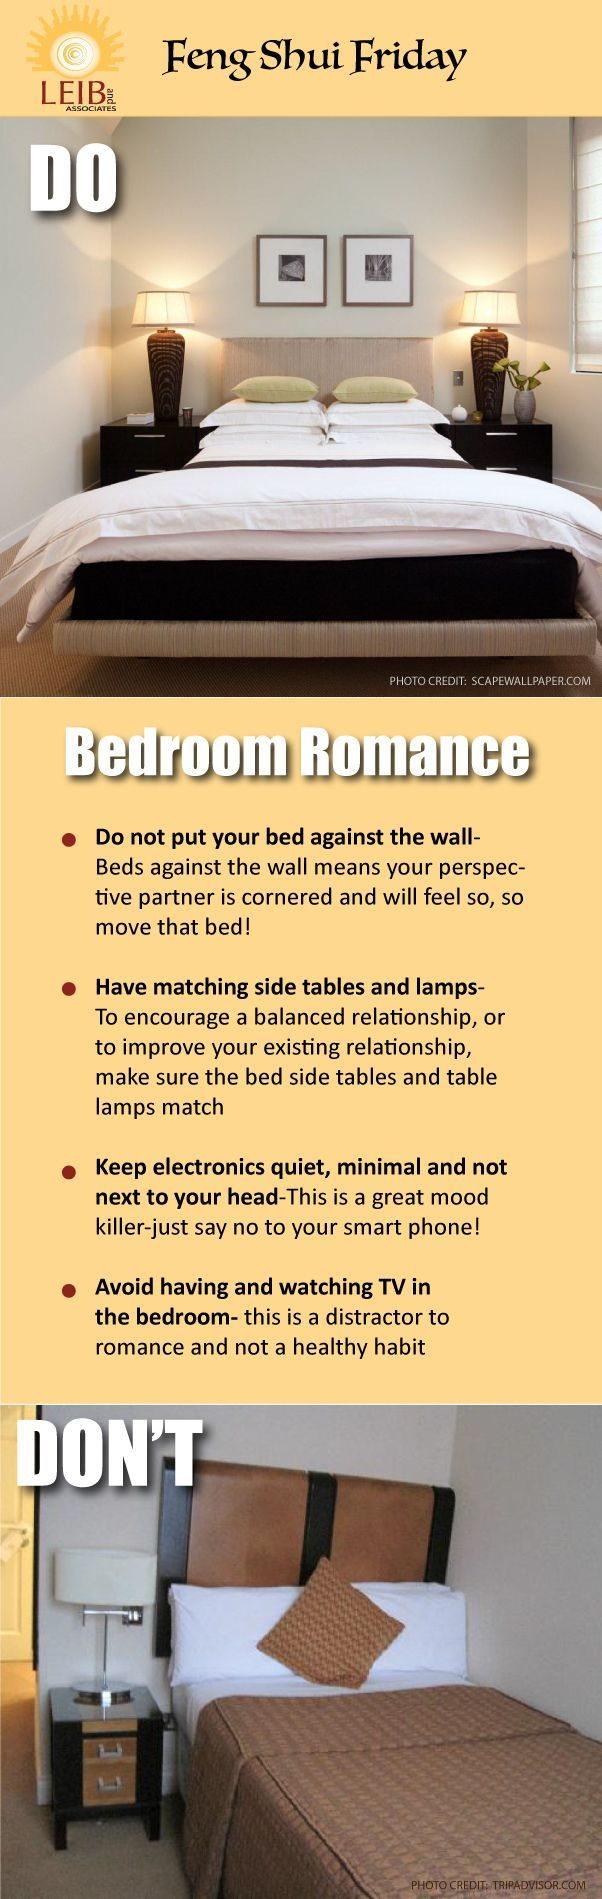 Feng Shui Bedroom Design: The Complete Guide | Feng shui, Layouts ...